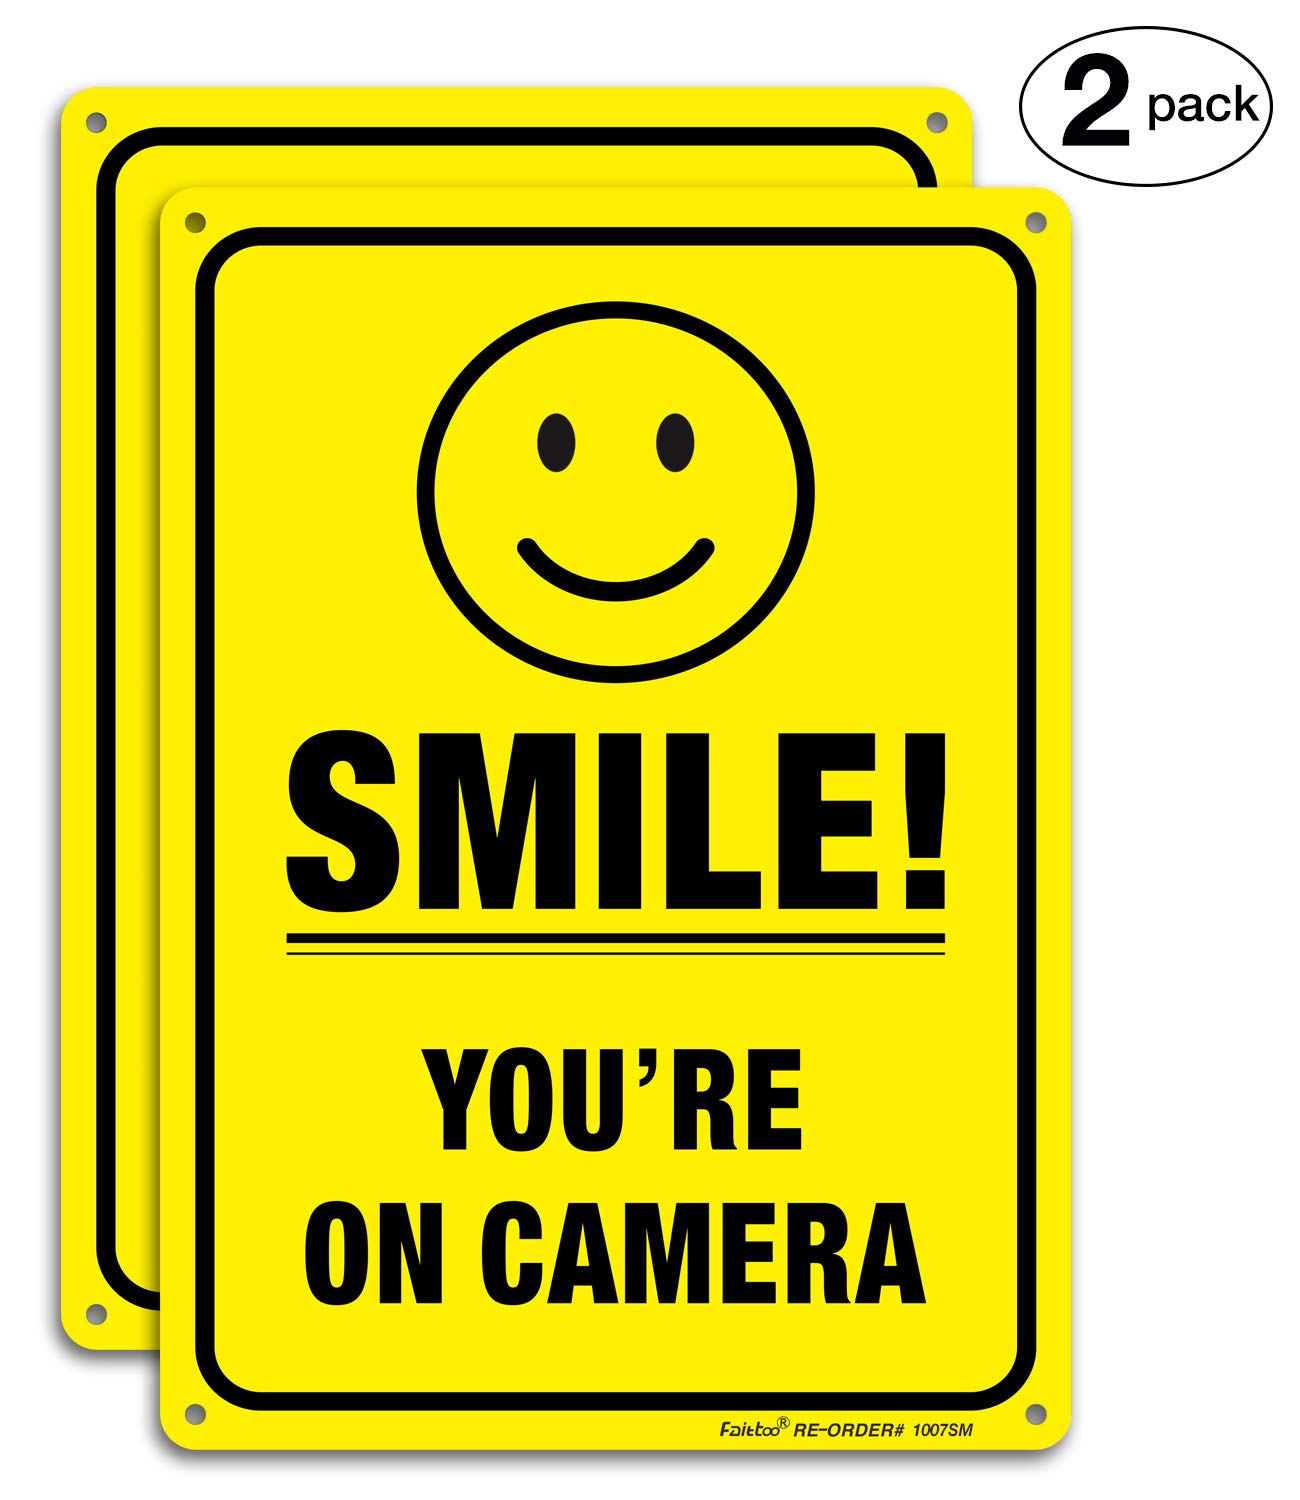 (2 Pack) Smile You're On Camera Video Surveillance Sign - 10 x7 Inches .040 Rust Free Heavy Duty Aluminum - Indoor or Outdoor Use for Home Business CCTV Security Camera,UV Protected & Reflective 713EpF6bhwL